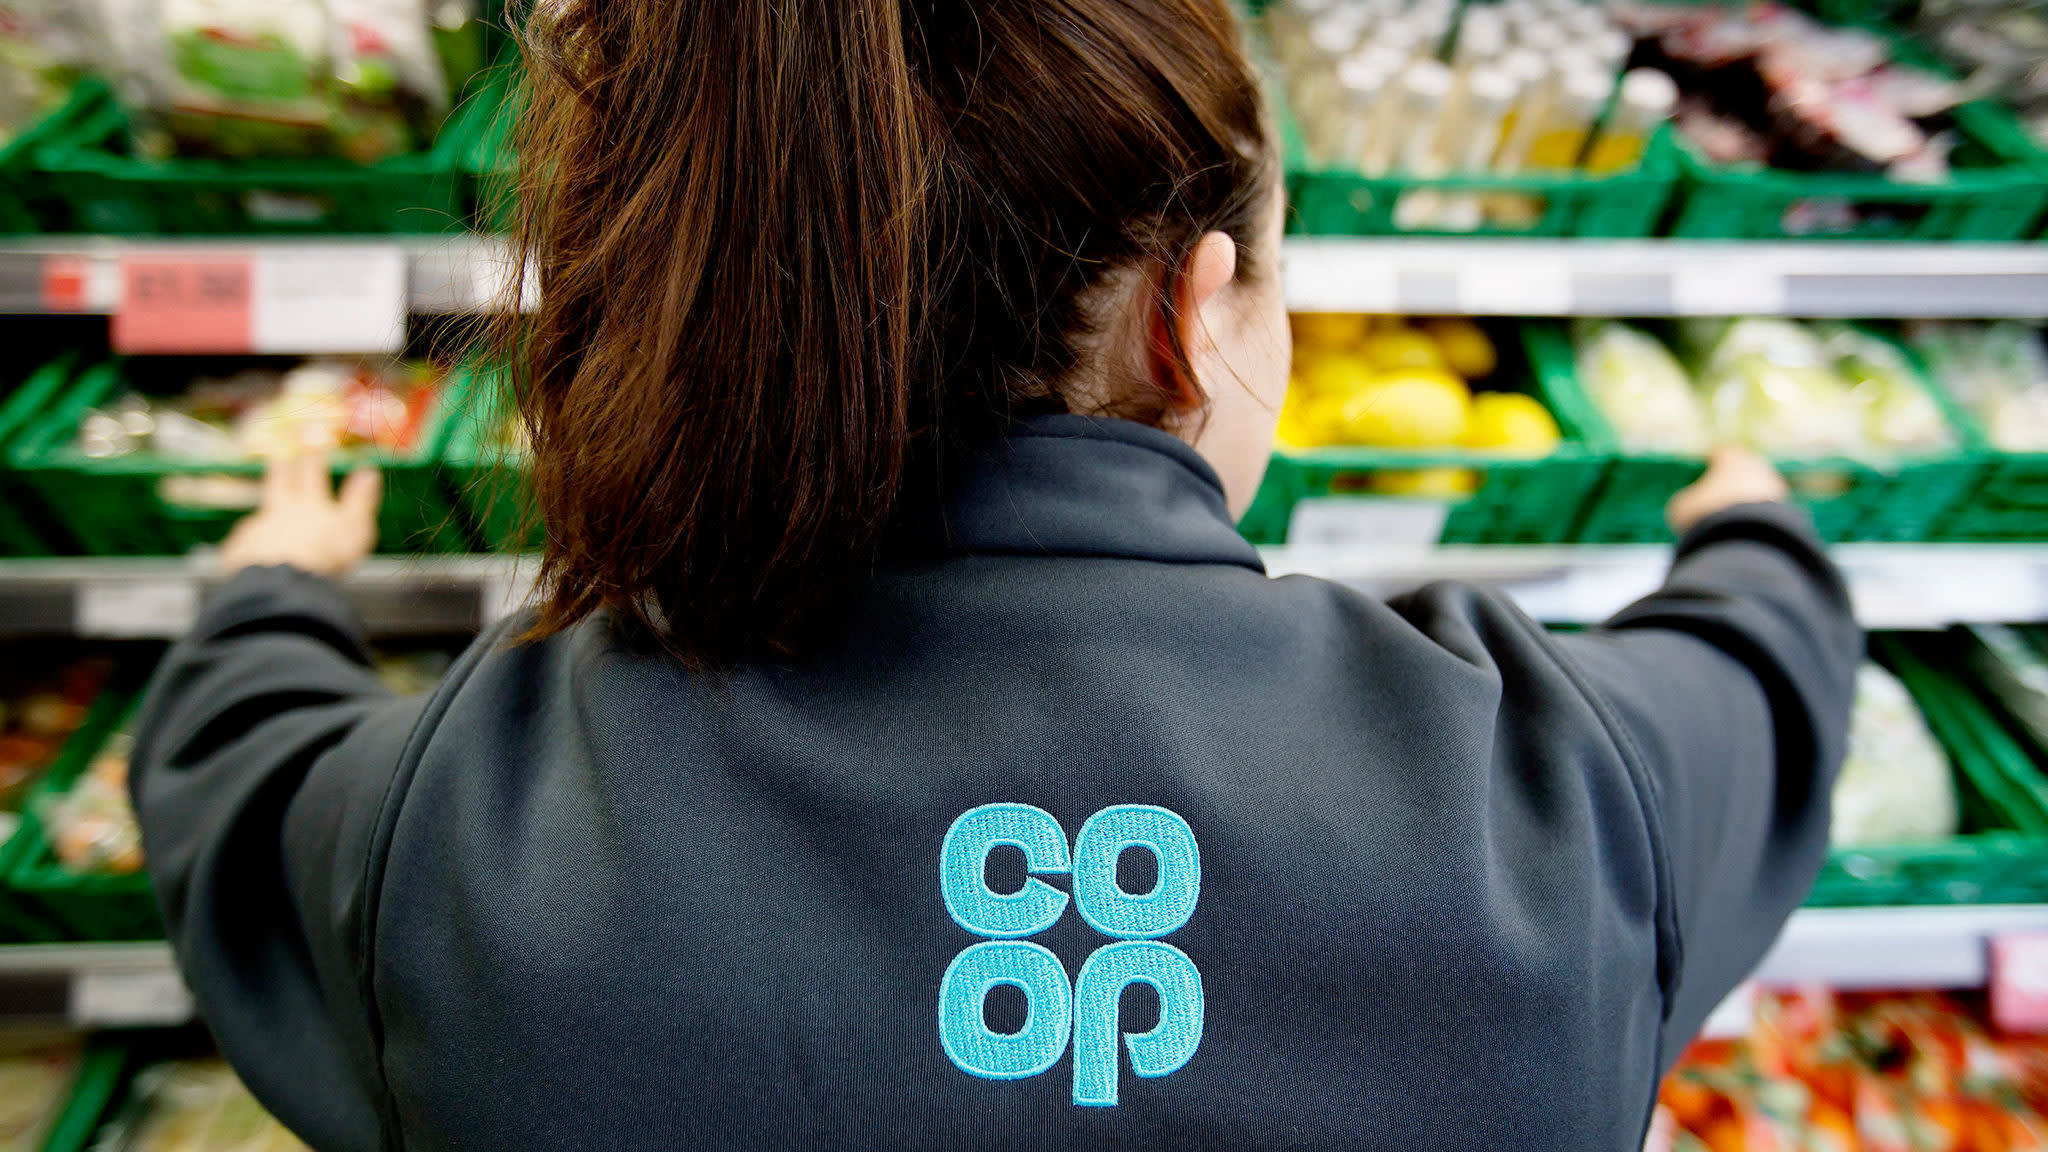 Co-op ordered to make 'major changes' over supplier treatment | Financial Times